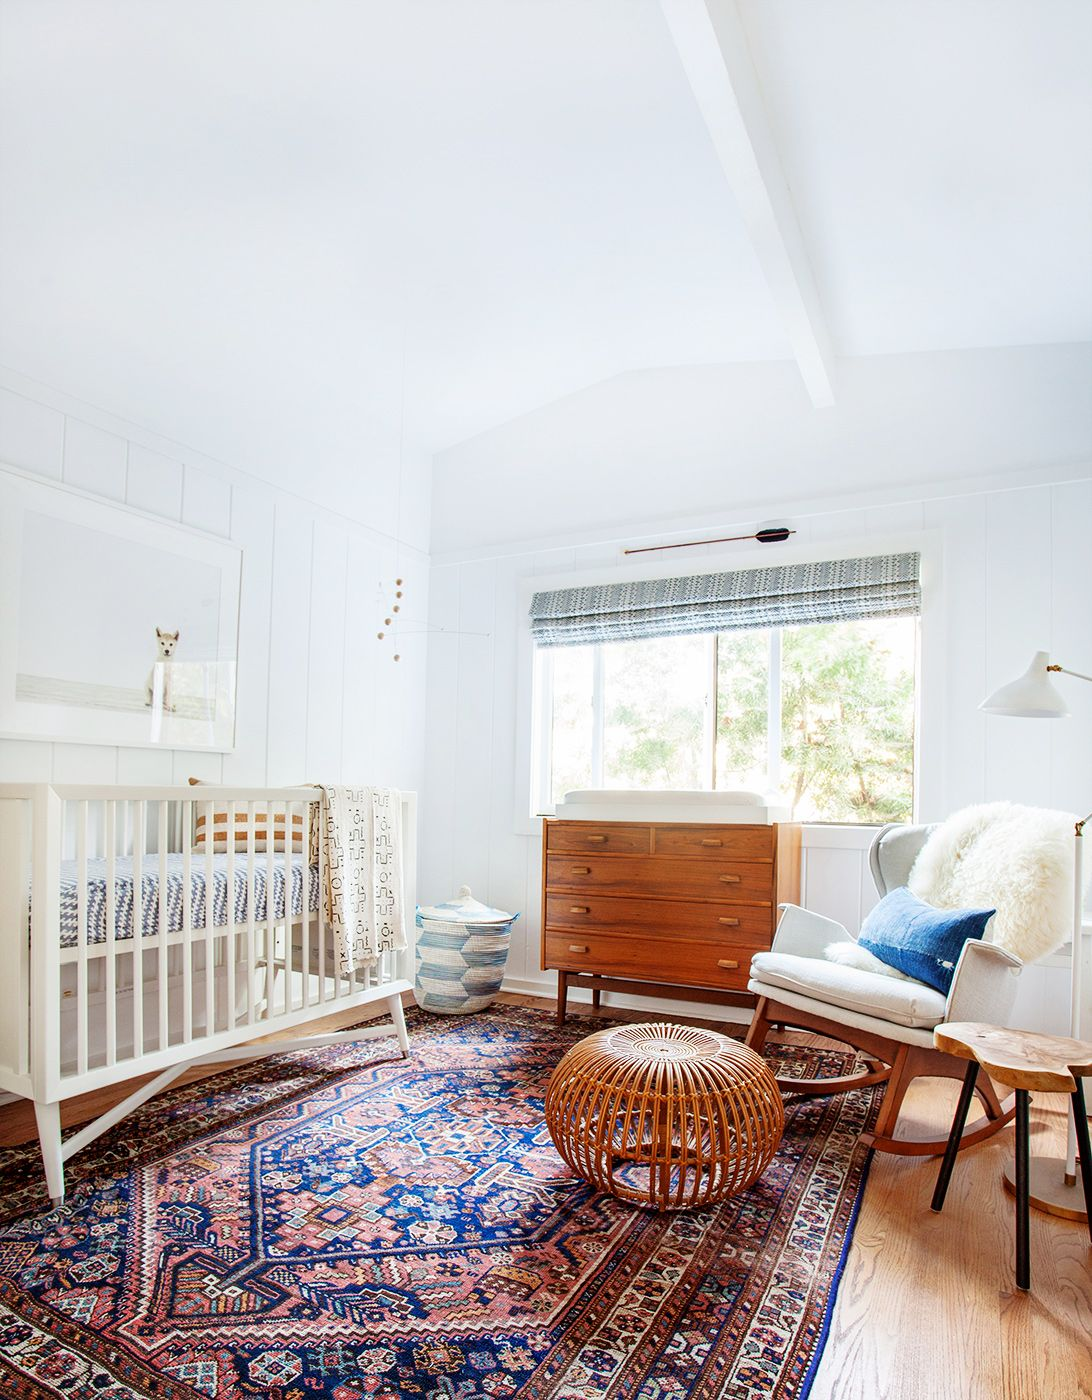 Kids Bedroom Rugs Australia home tour: inside a young family's eclectic california home